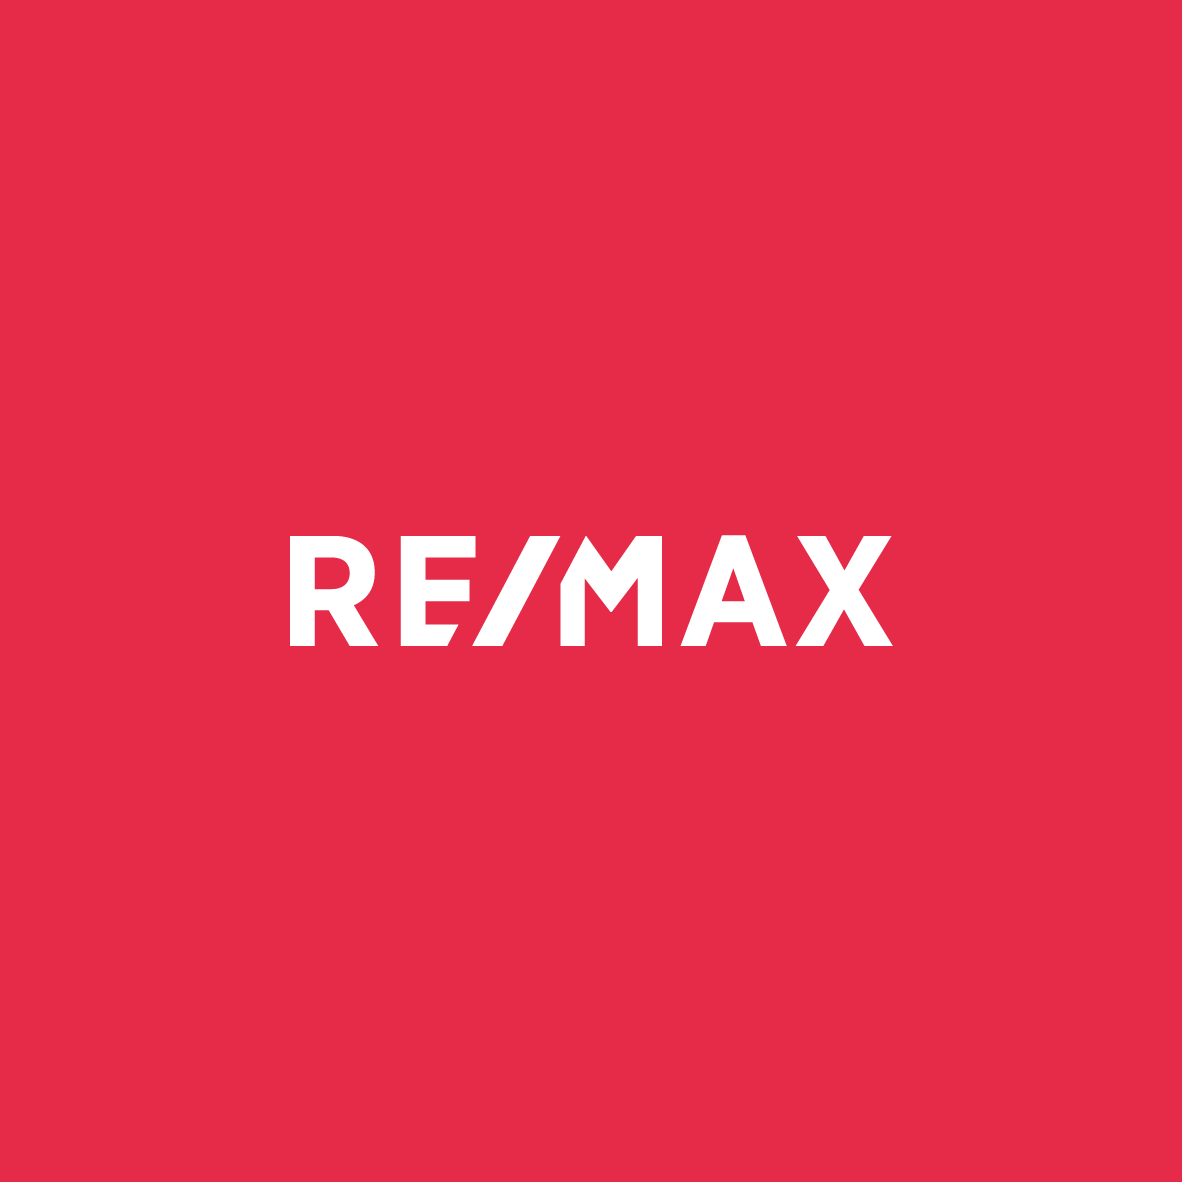 14_REMAX.png